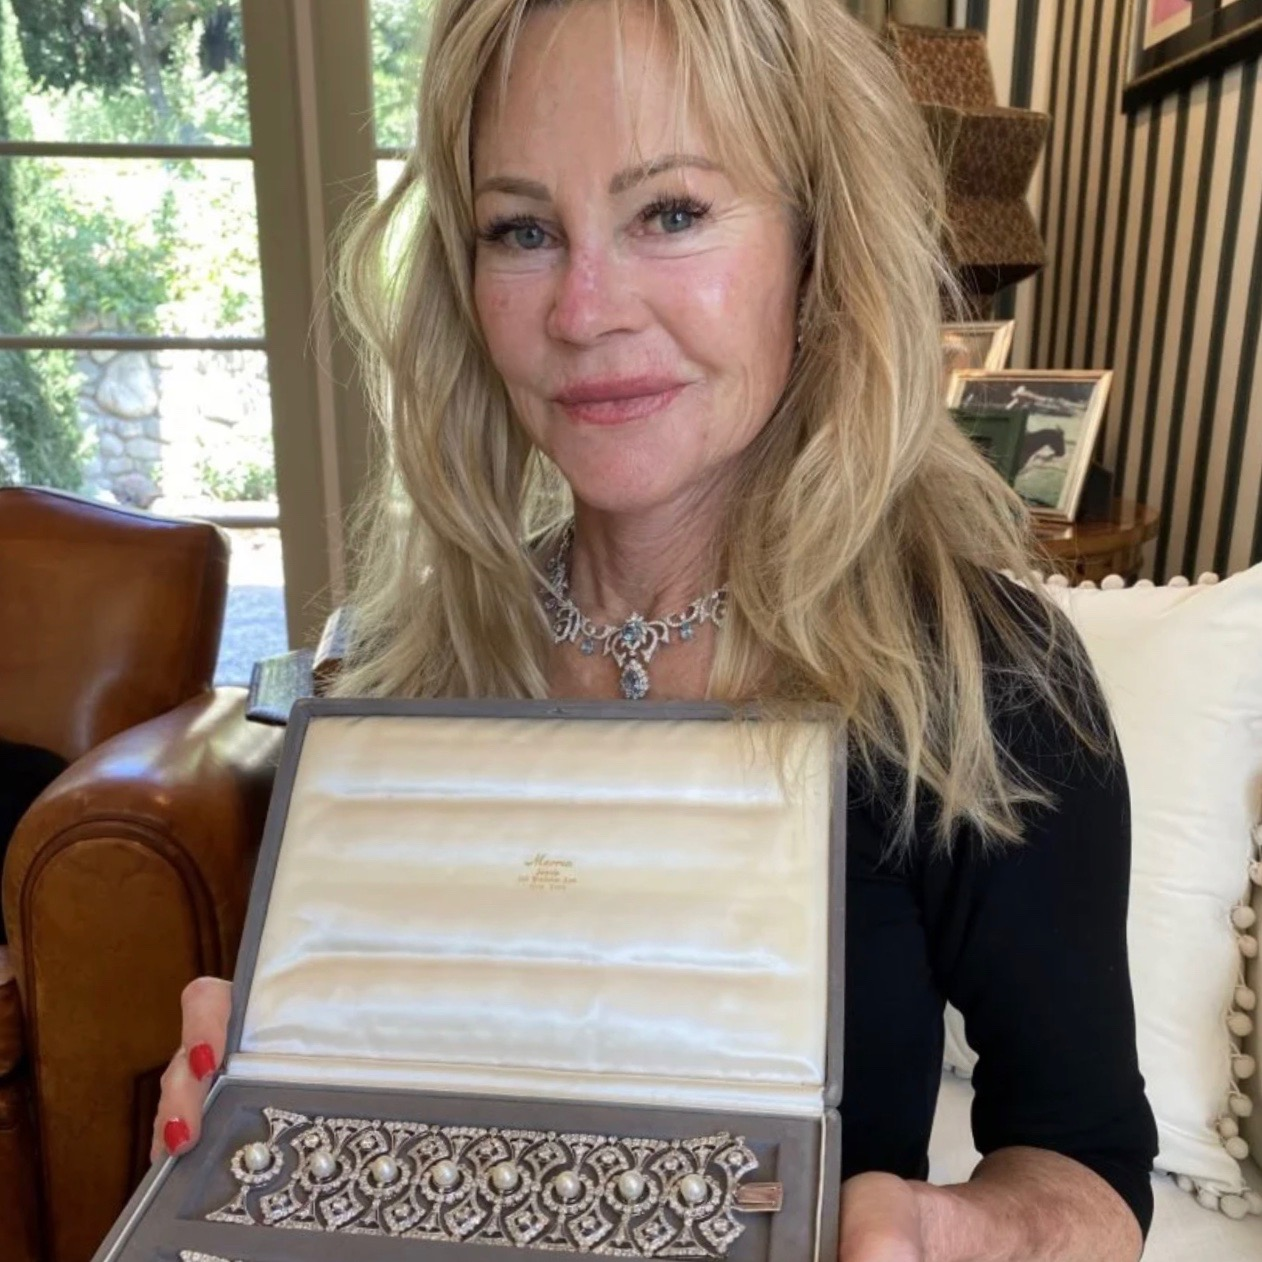 MELANIE GRIFFITH'S TIFFANY & CO. DIAMOND AND PEARL BRACELETS PHOTO